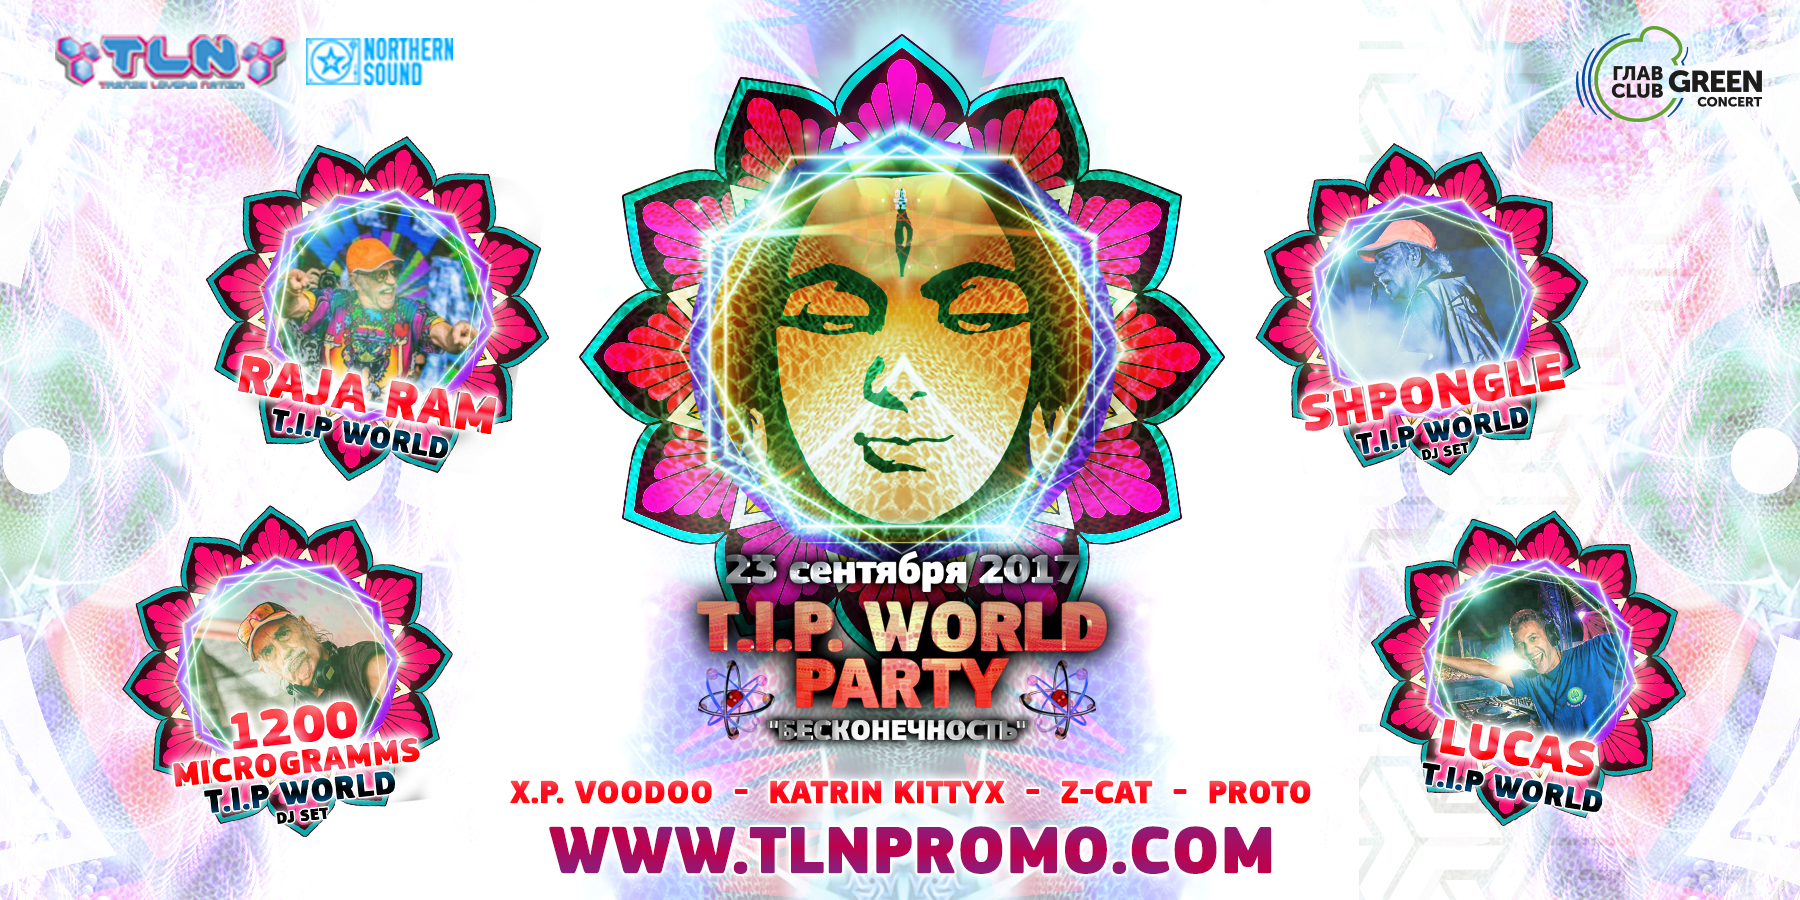 T.I.P. World Party